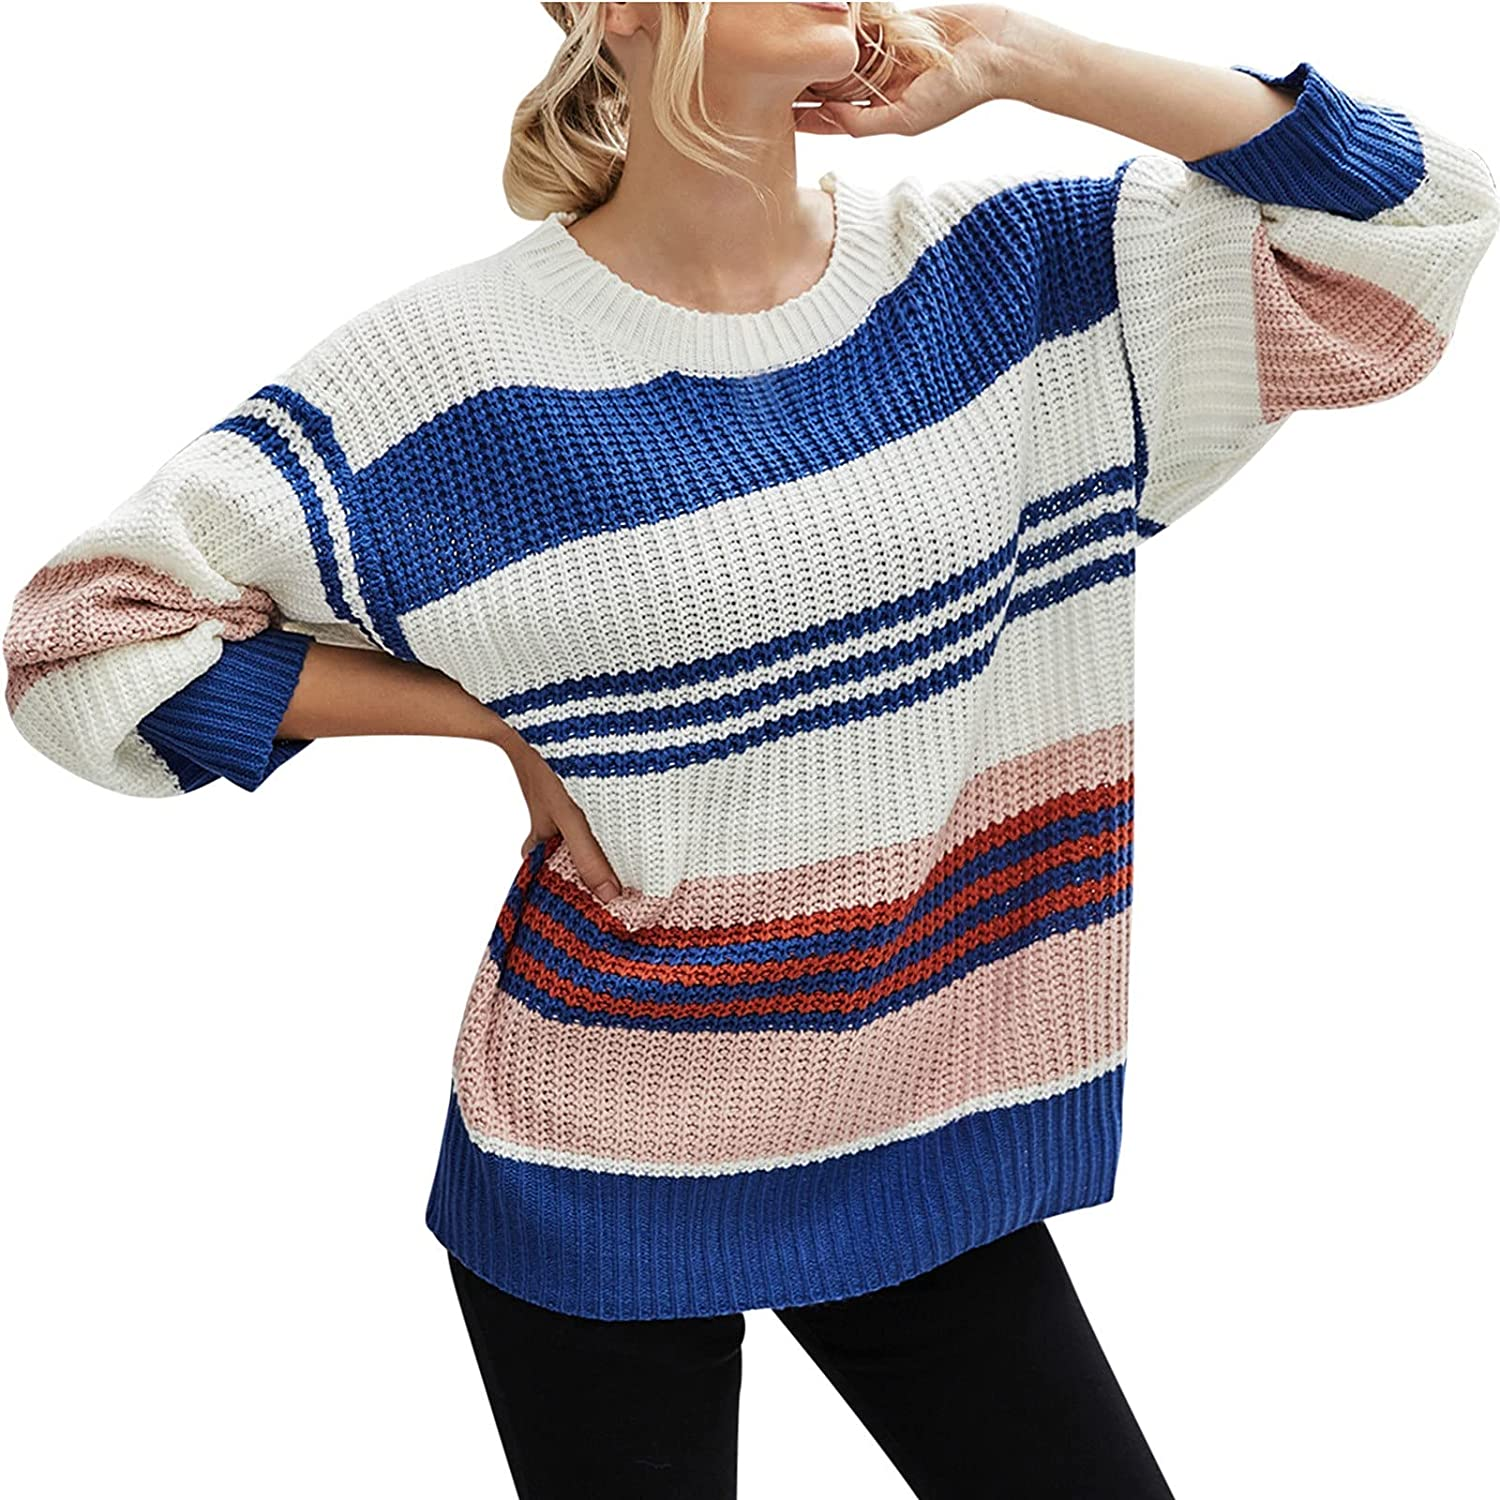 Women's Pullover Sweater Long Sleeve Tunics Round Neck Striped Color Thick Knitted Tops